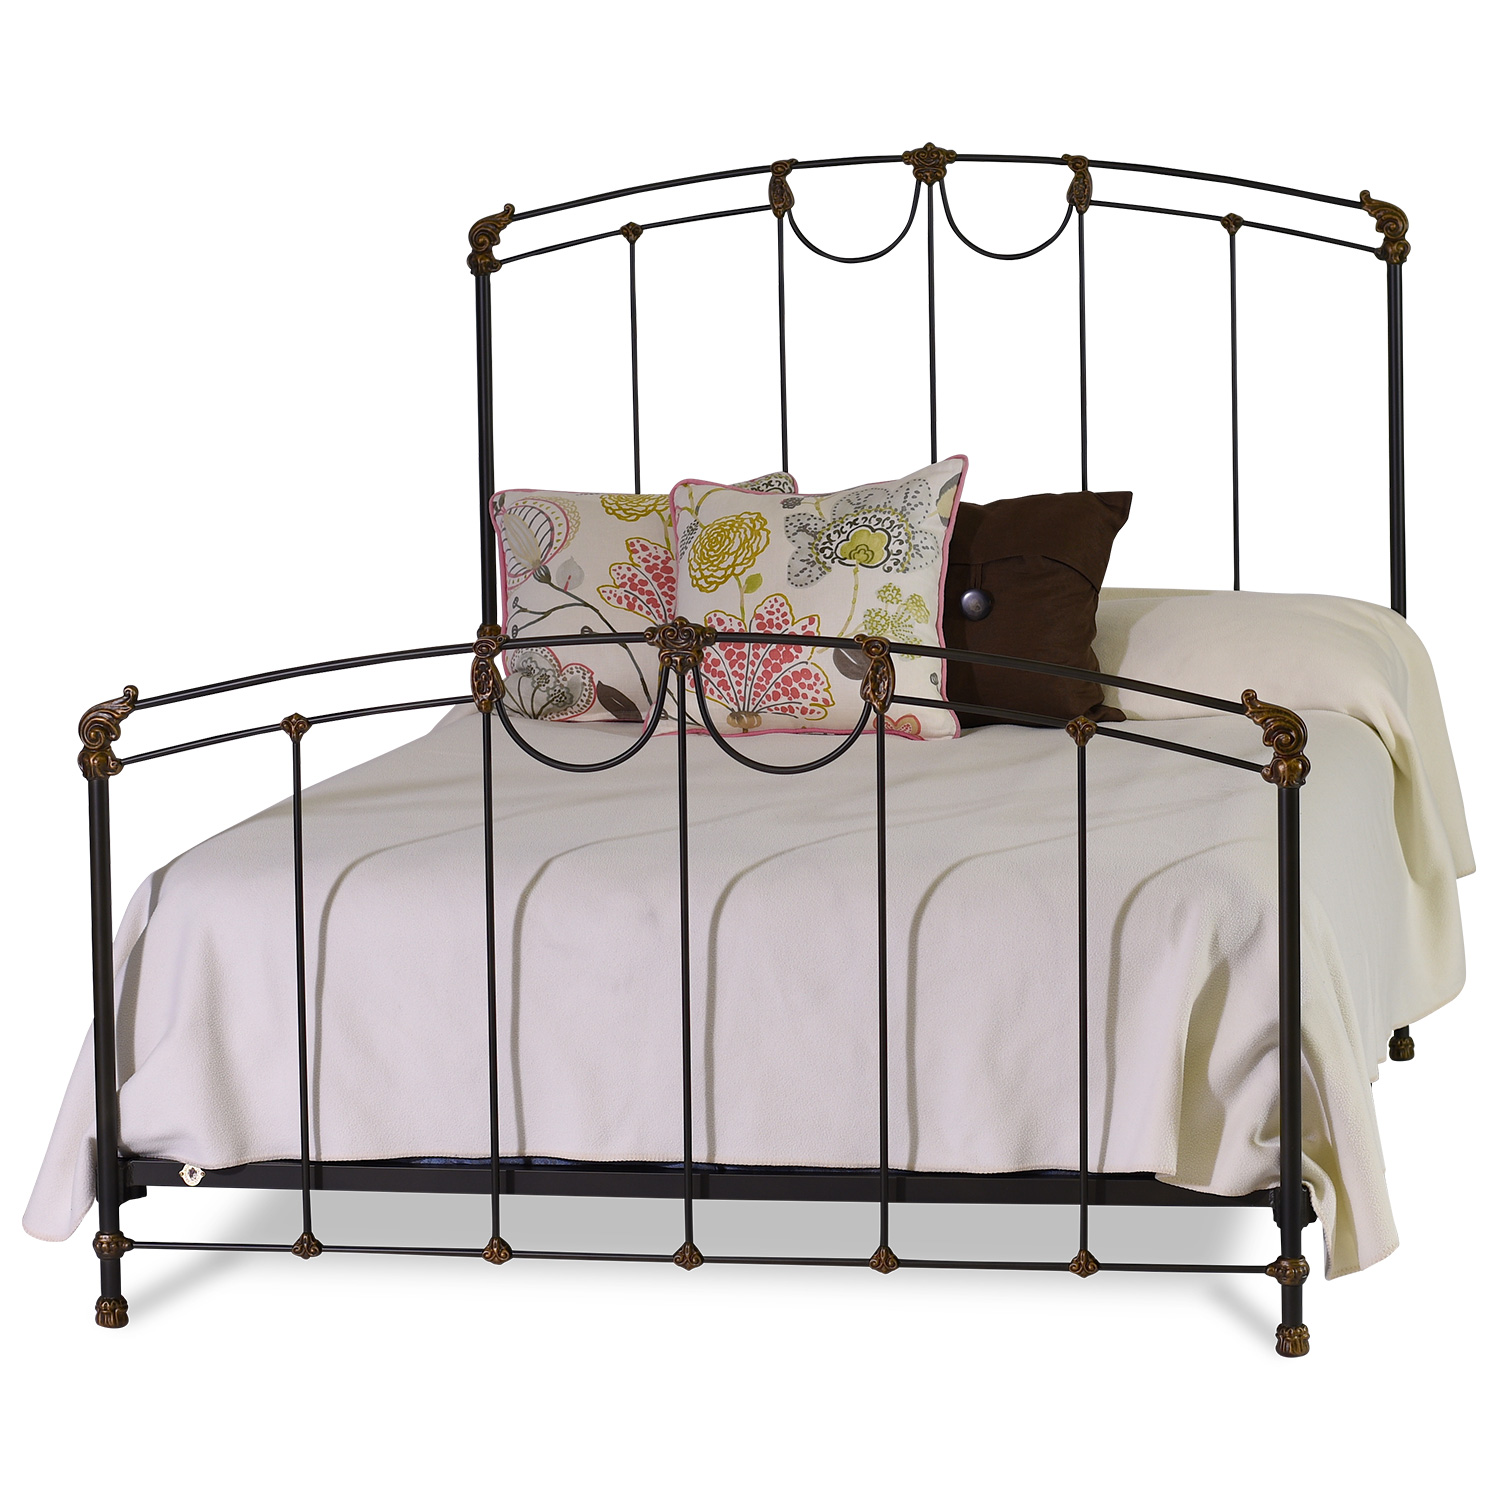 149 Scallop Iron Bed